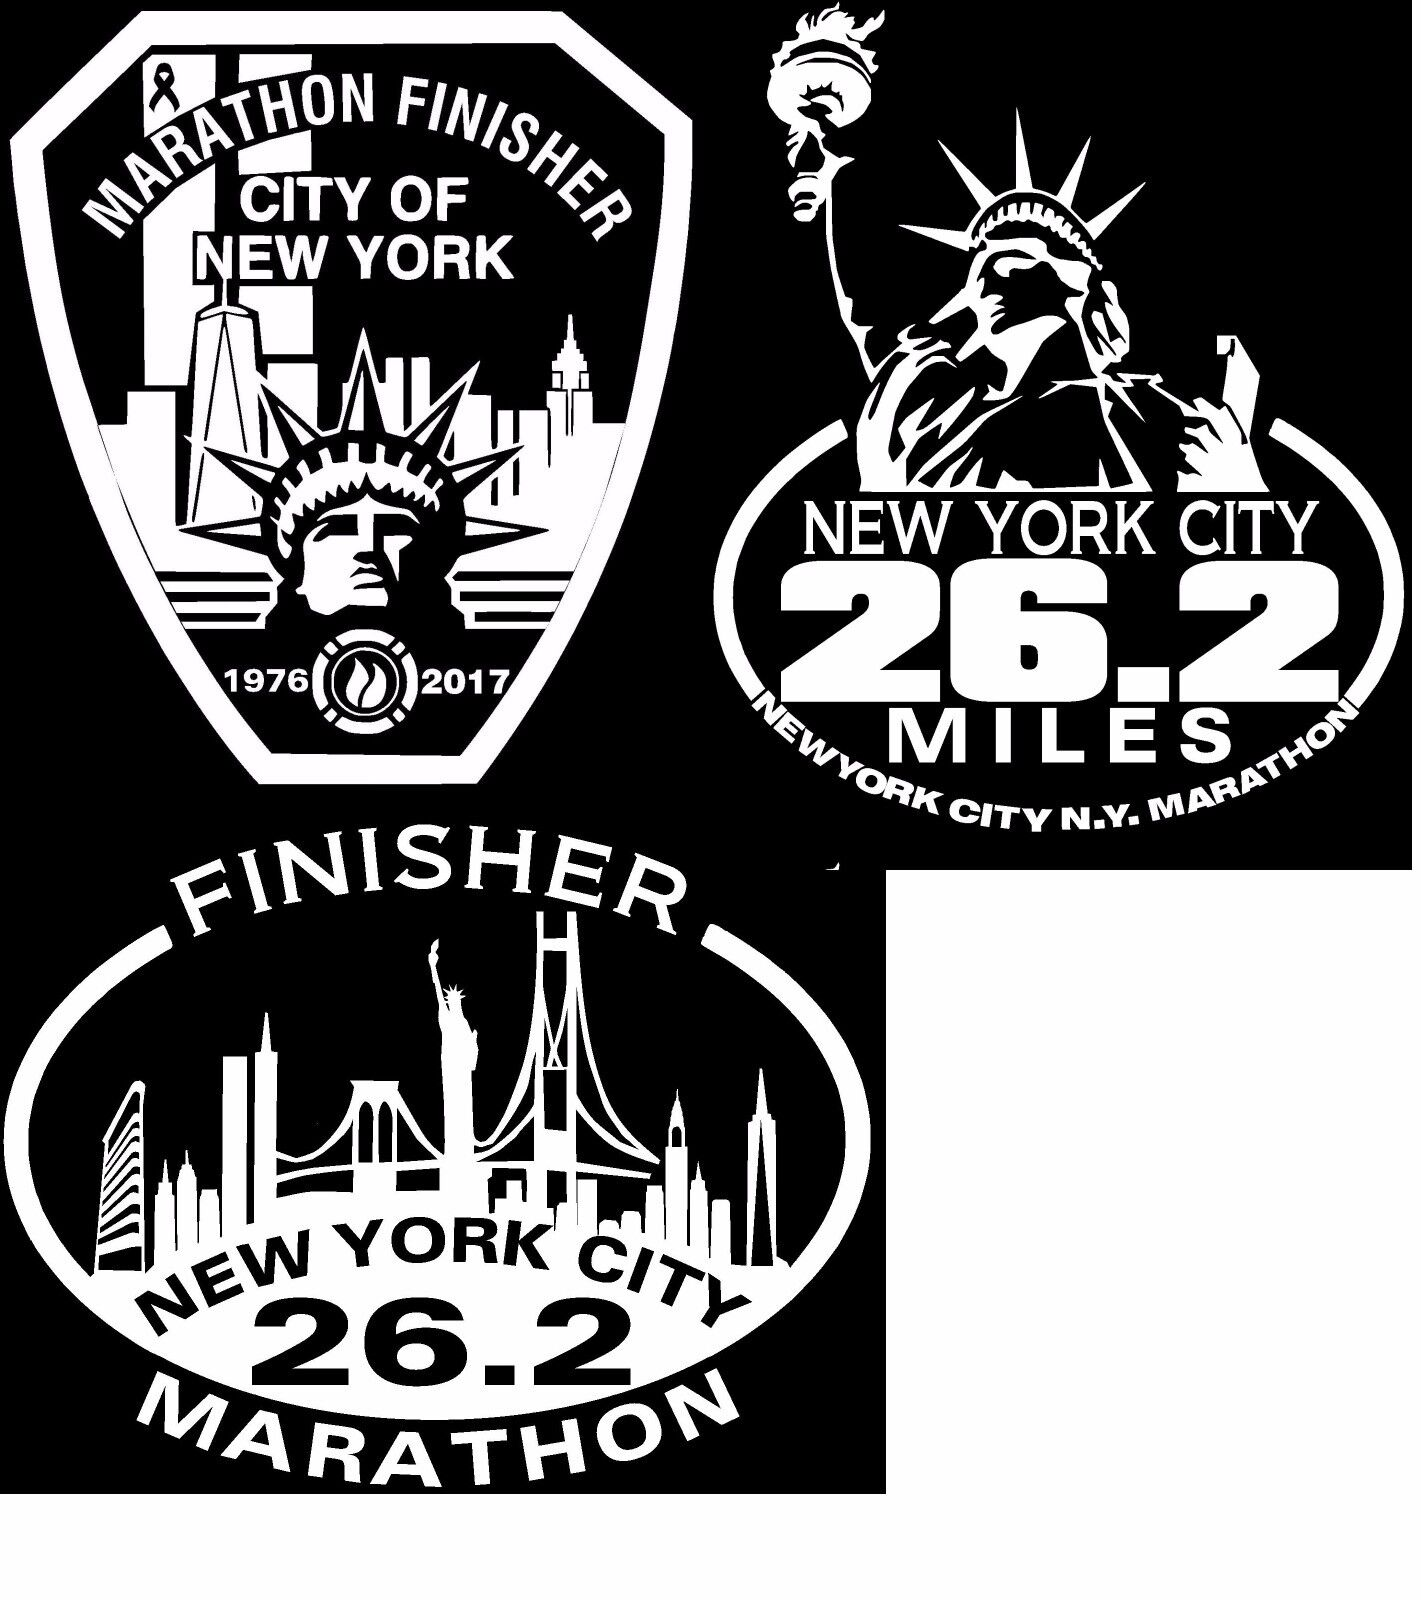 3x NYC Marathon SKYLINEDecals 1x NYC Liberty Decal 3x NYC FDNY  Decals